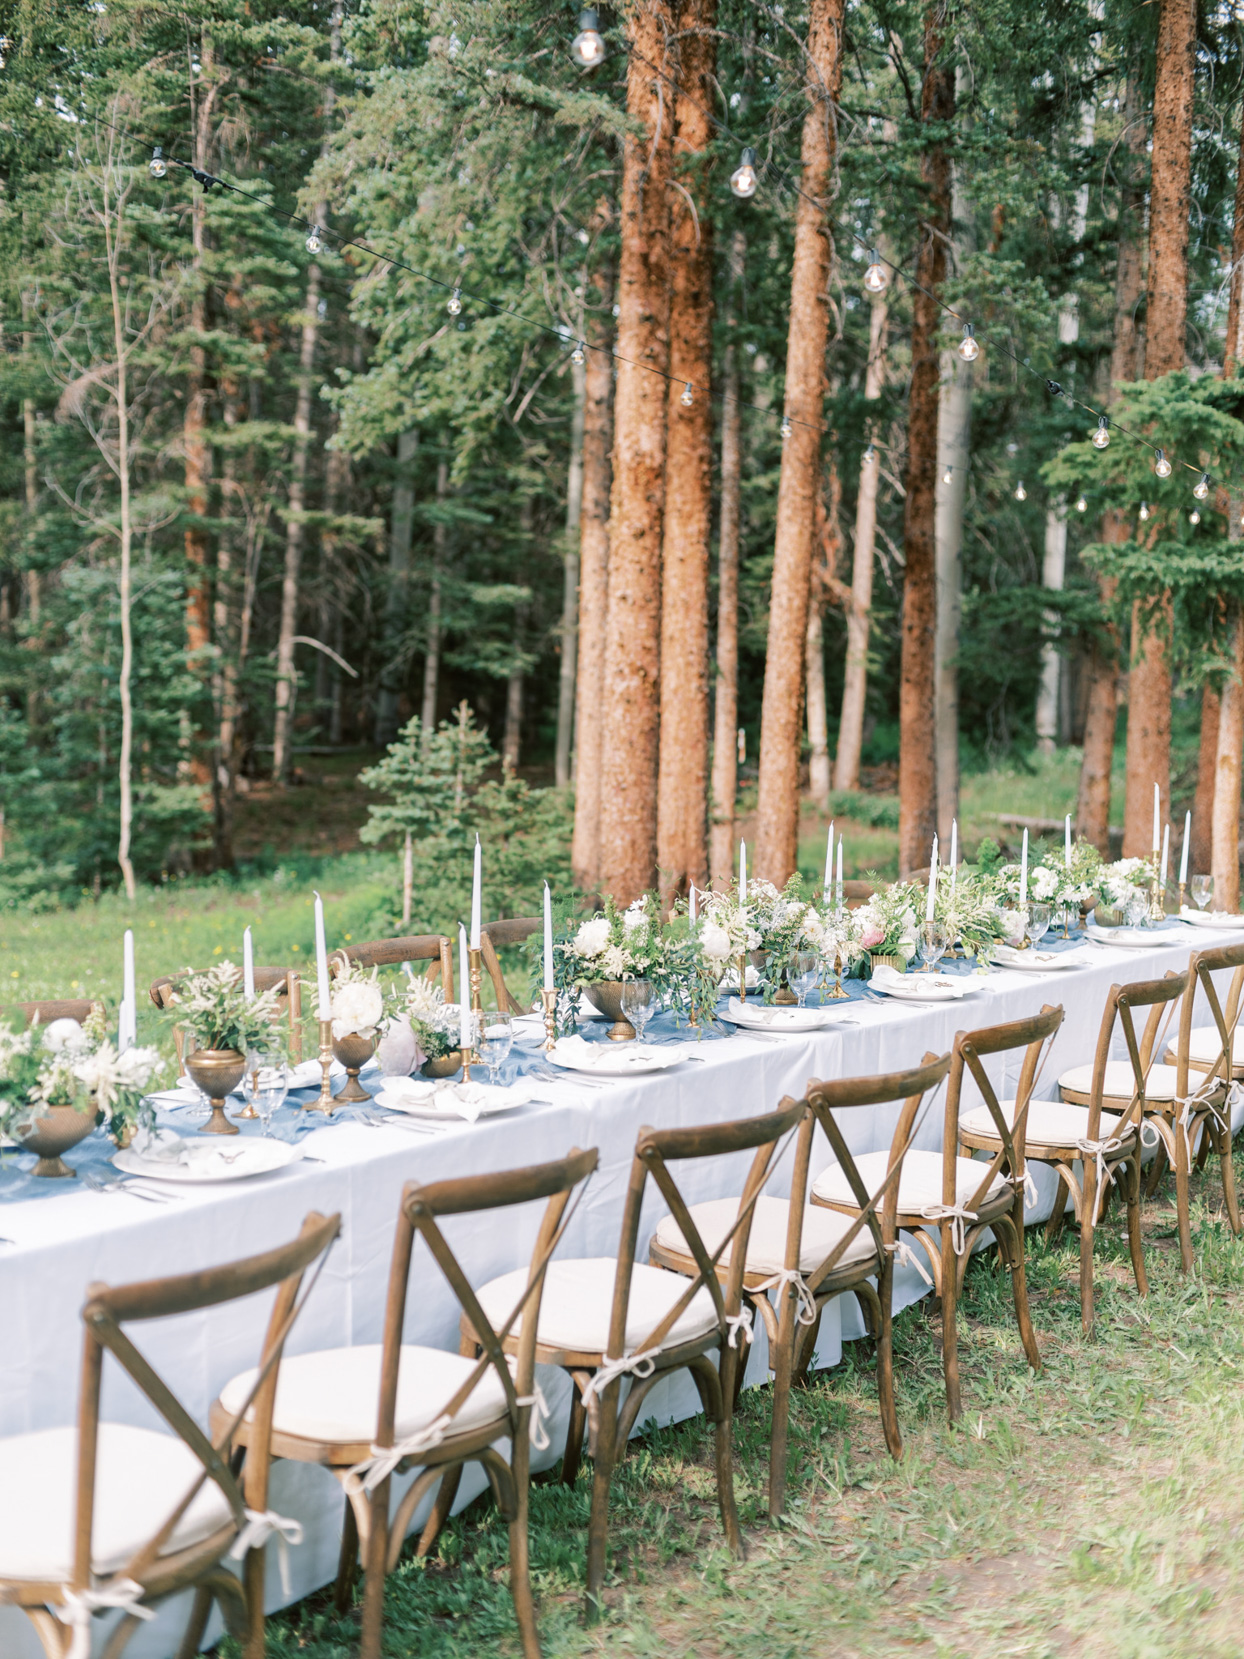 outdoor table setting for wedding